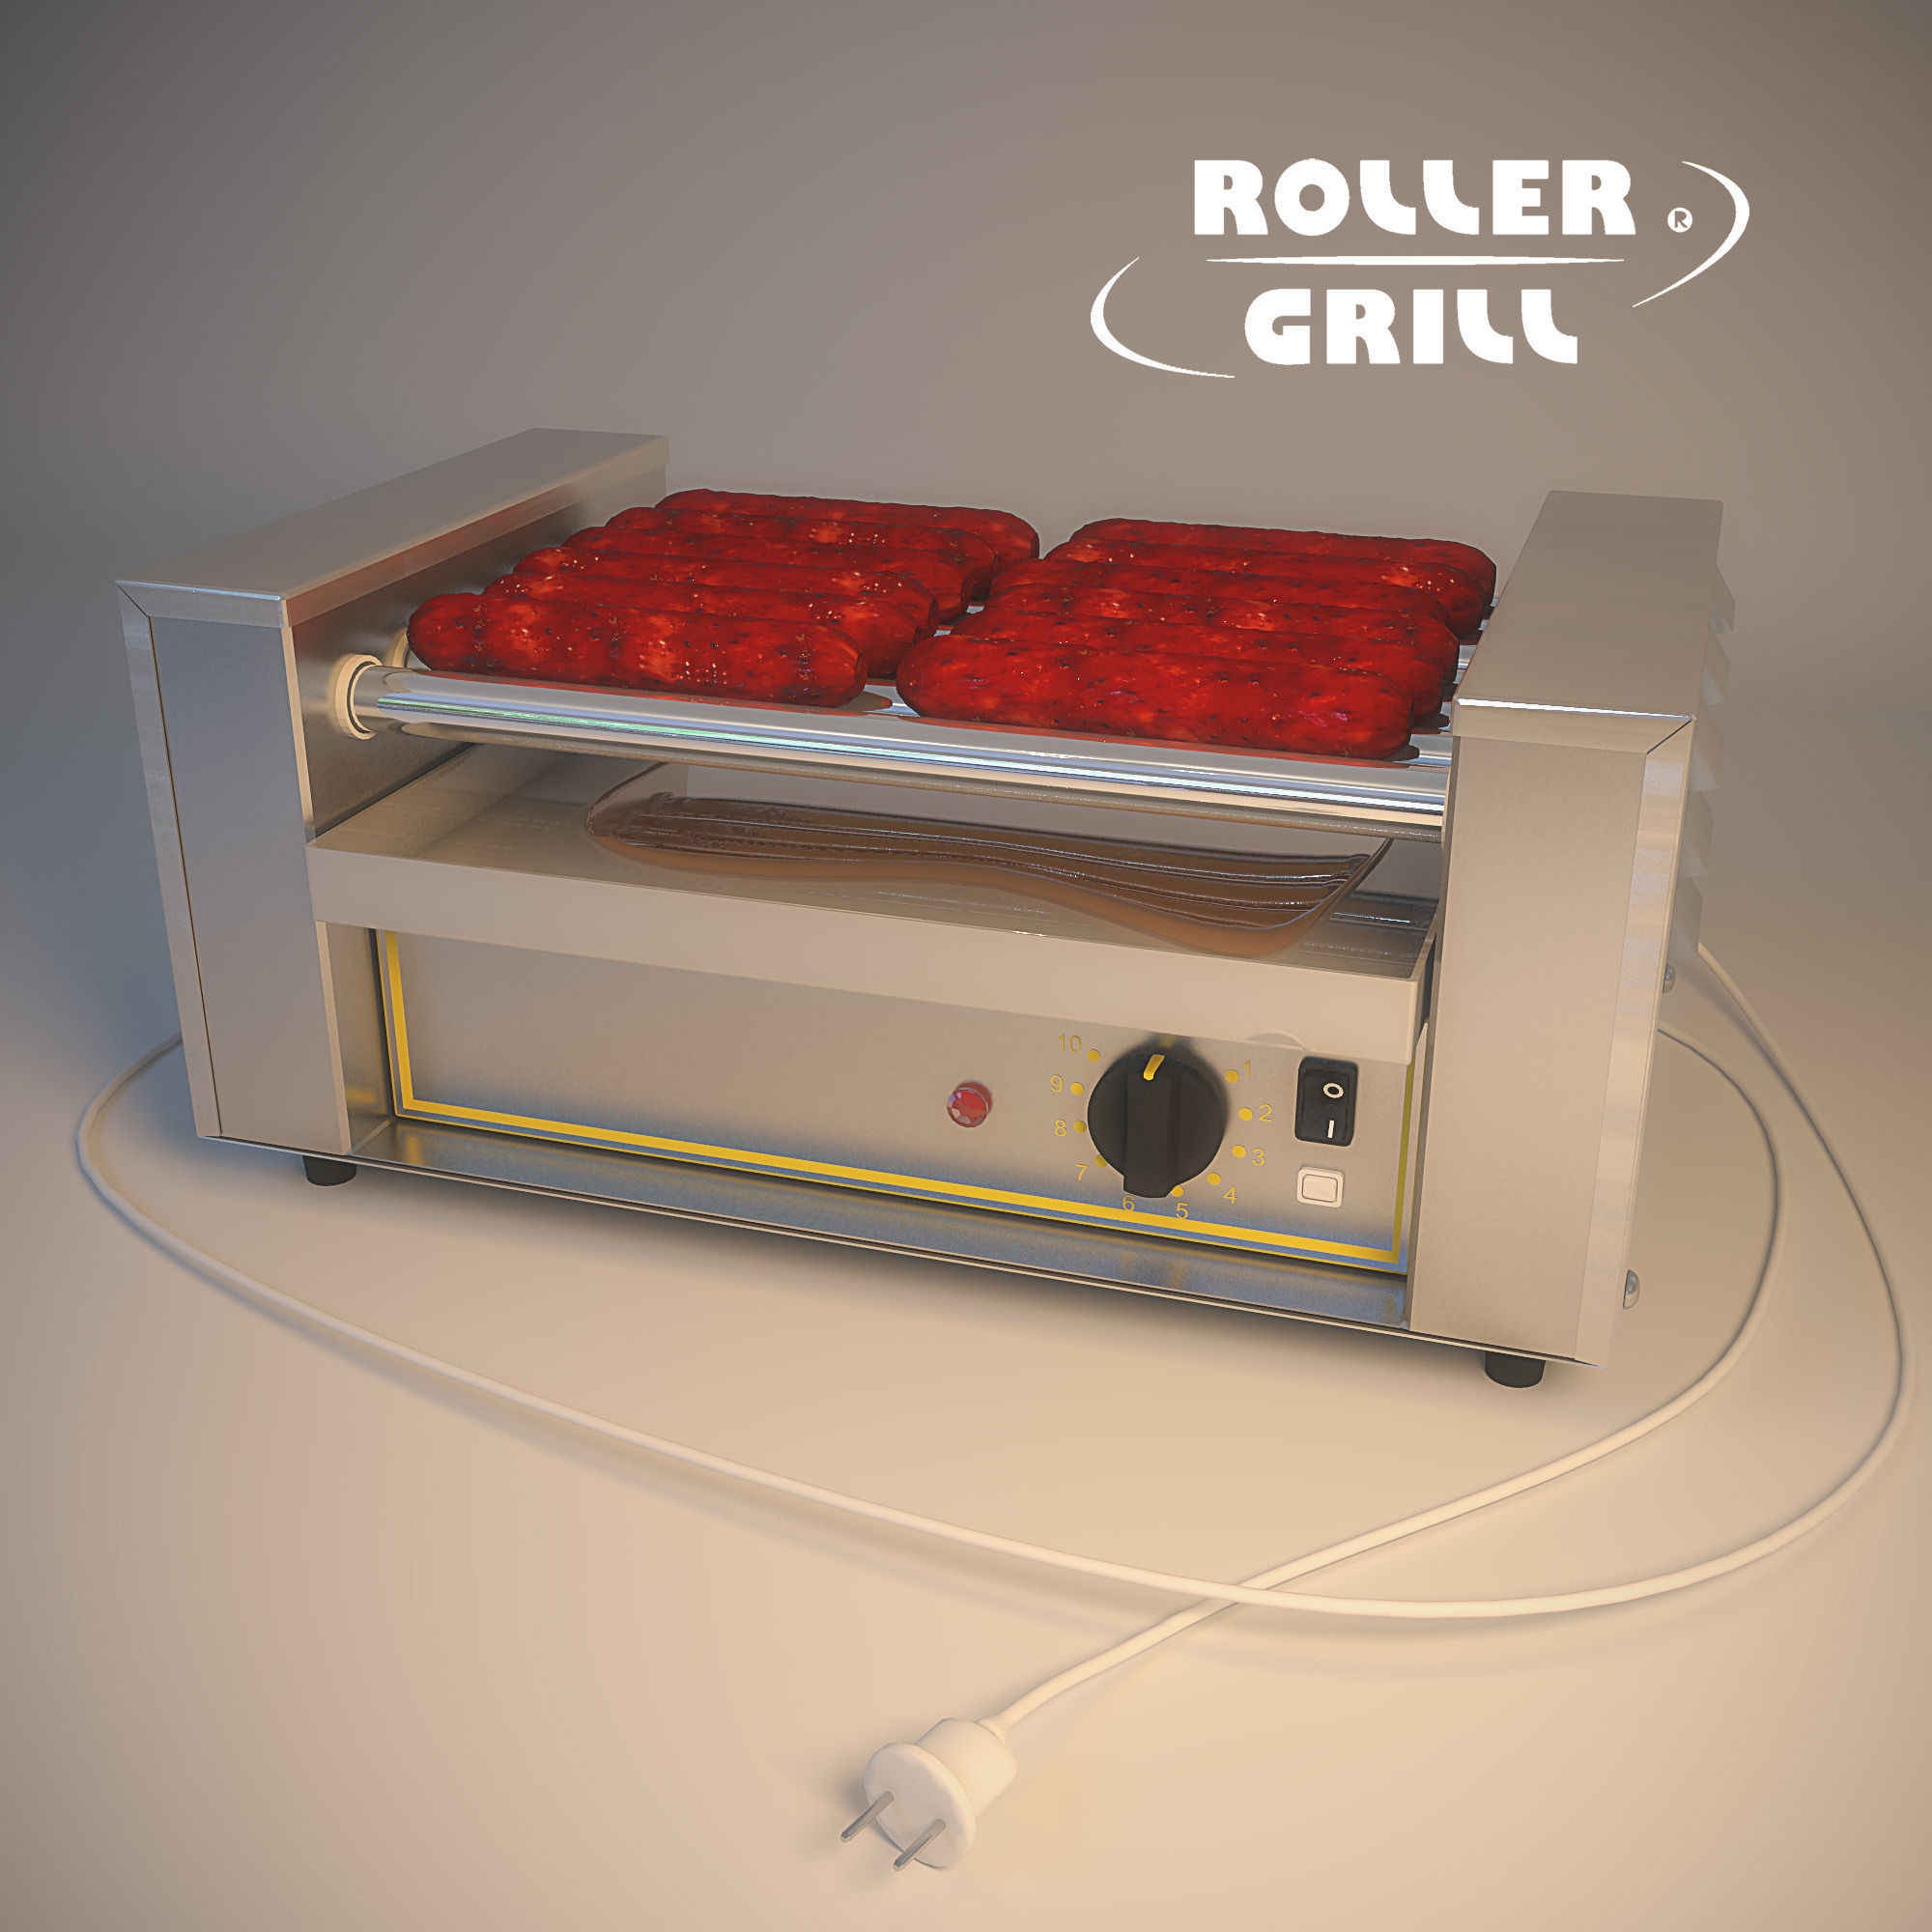 Roller grill rg5